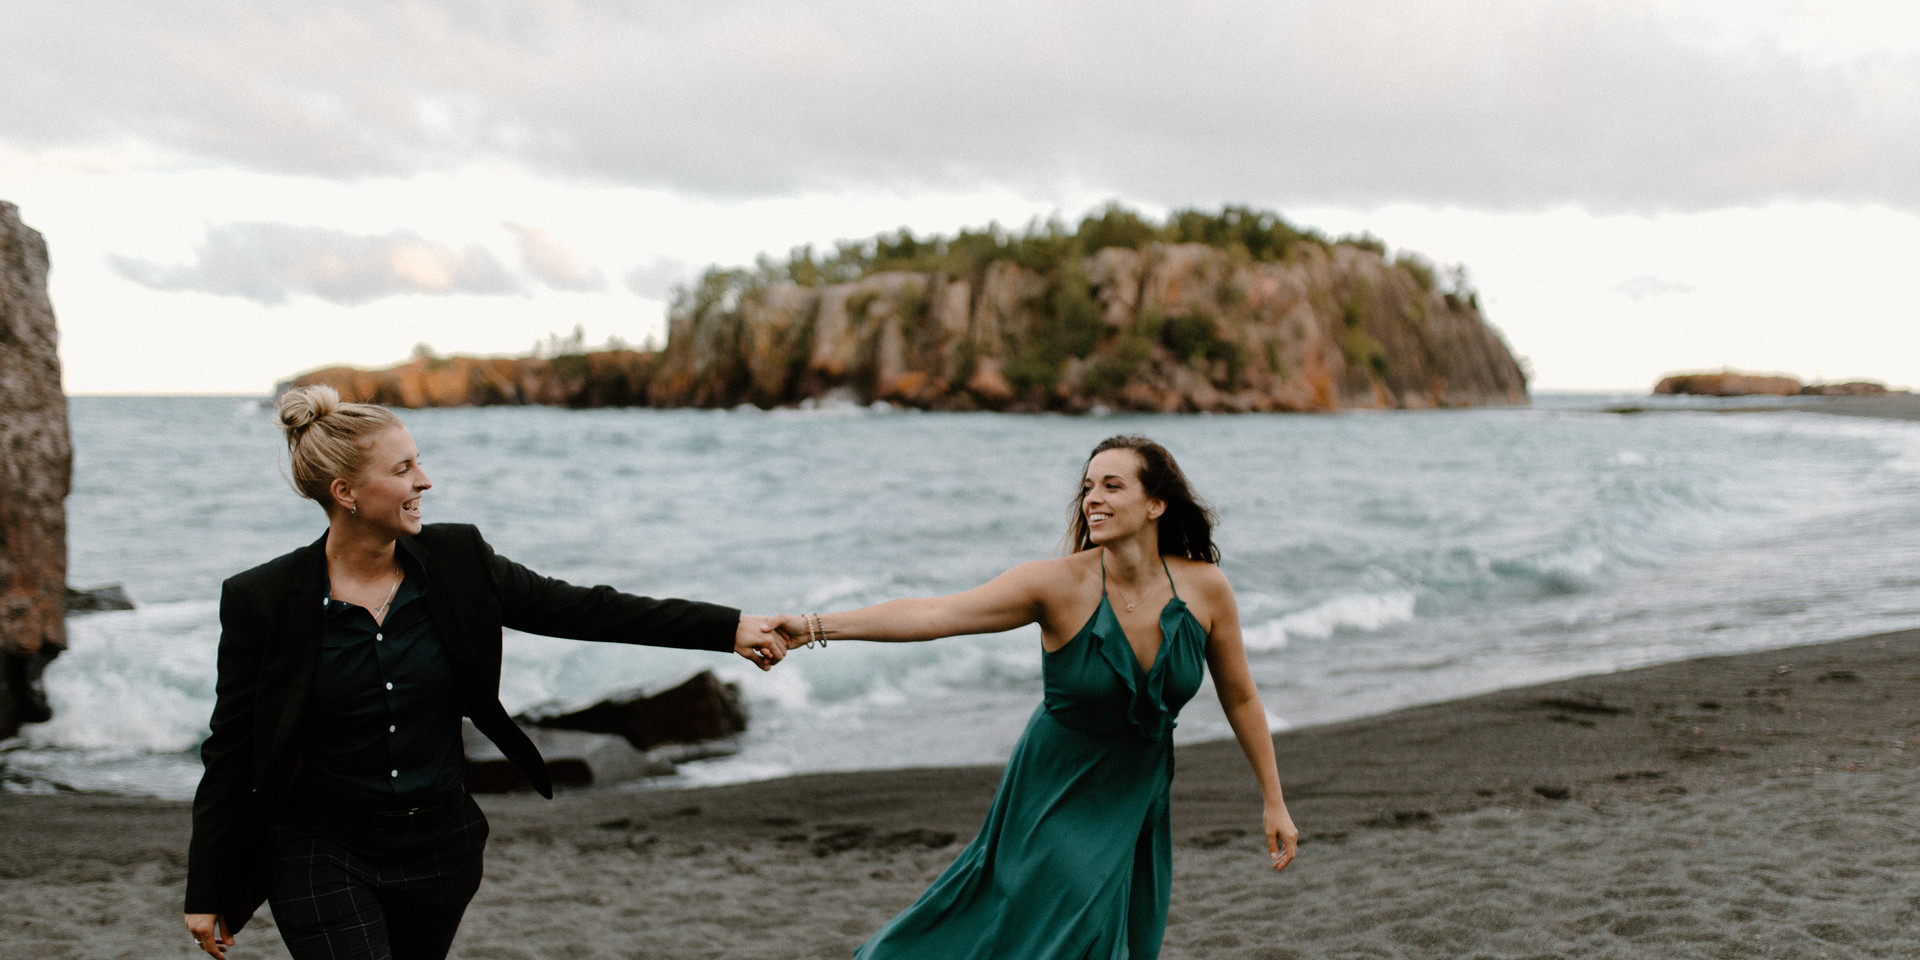 Black beach silver bay duluth minnesota engagement session